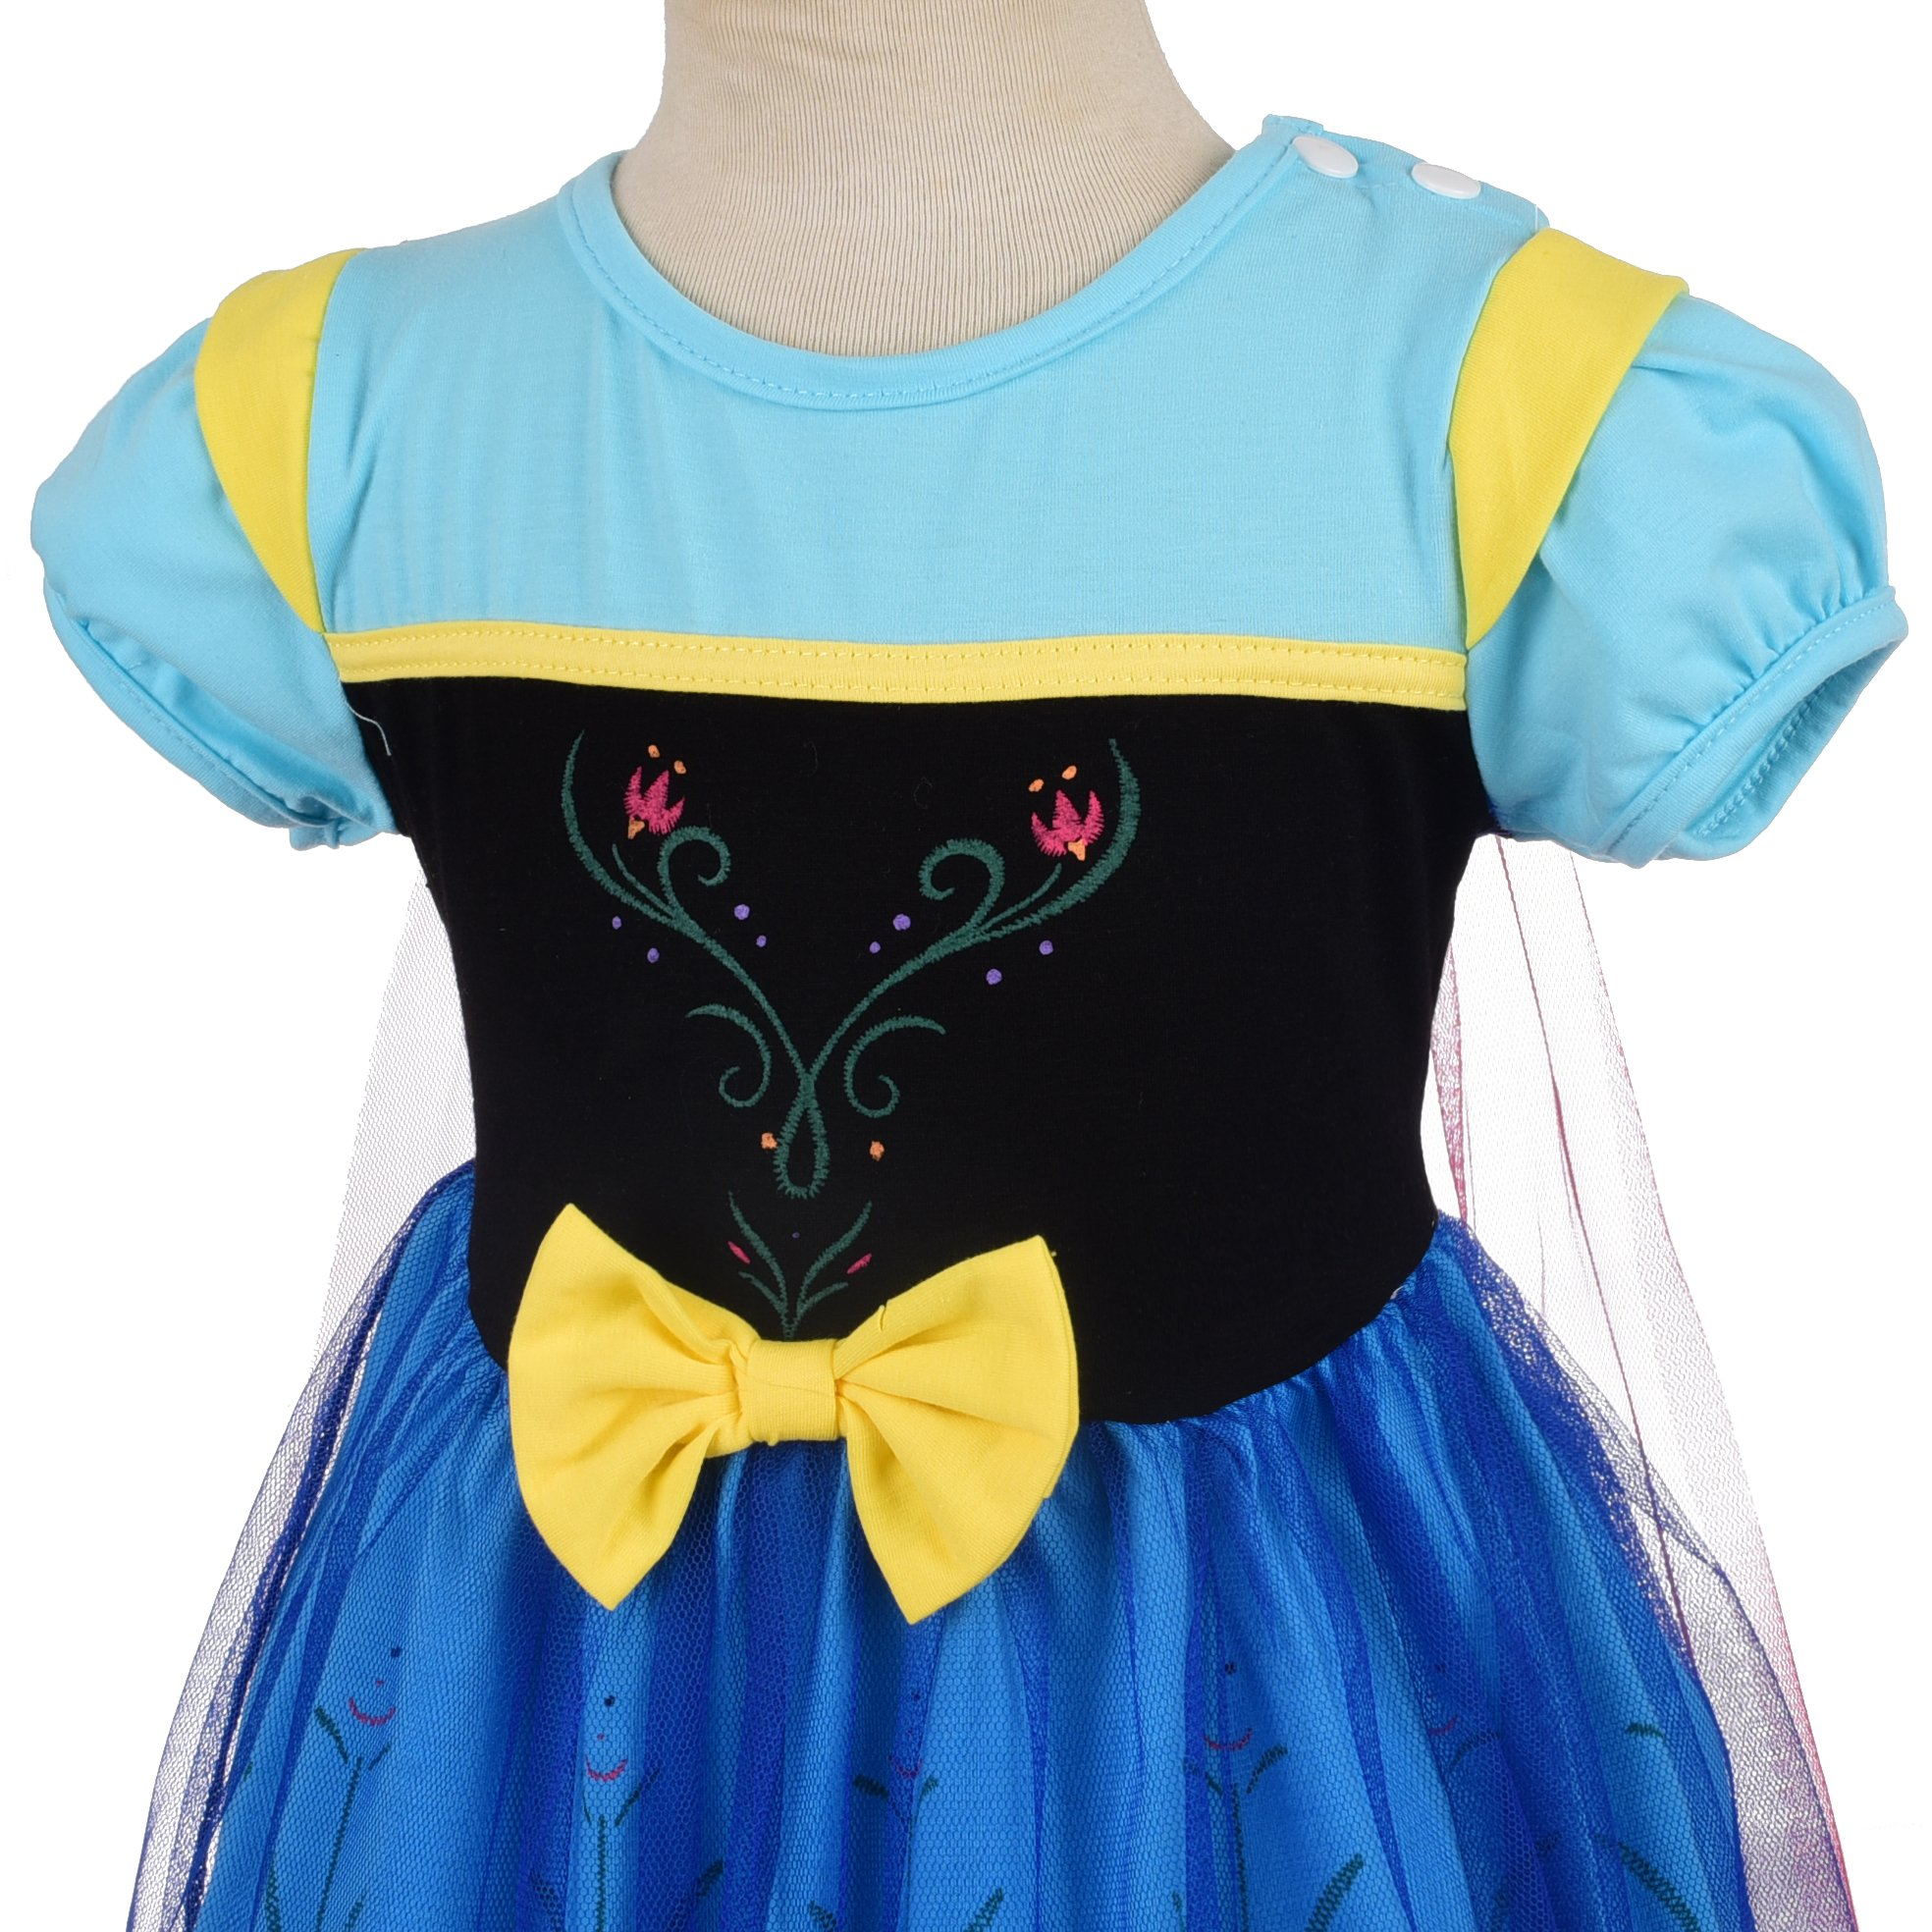 Dressy Daisy Princess Anna Dress for Toddler Girls with Cape Halloween Fancy Party Costume Dress Size 2T by Dressy Daisy (Image #5)